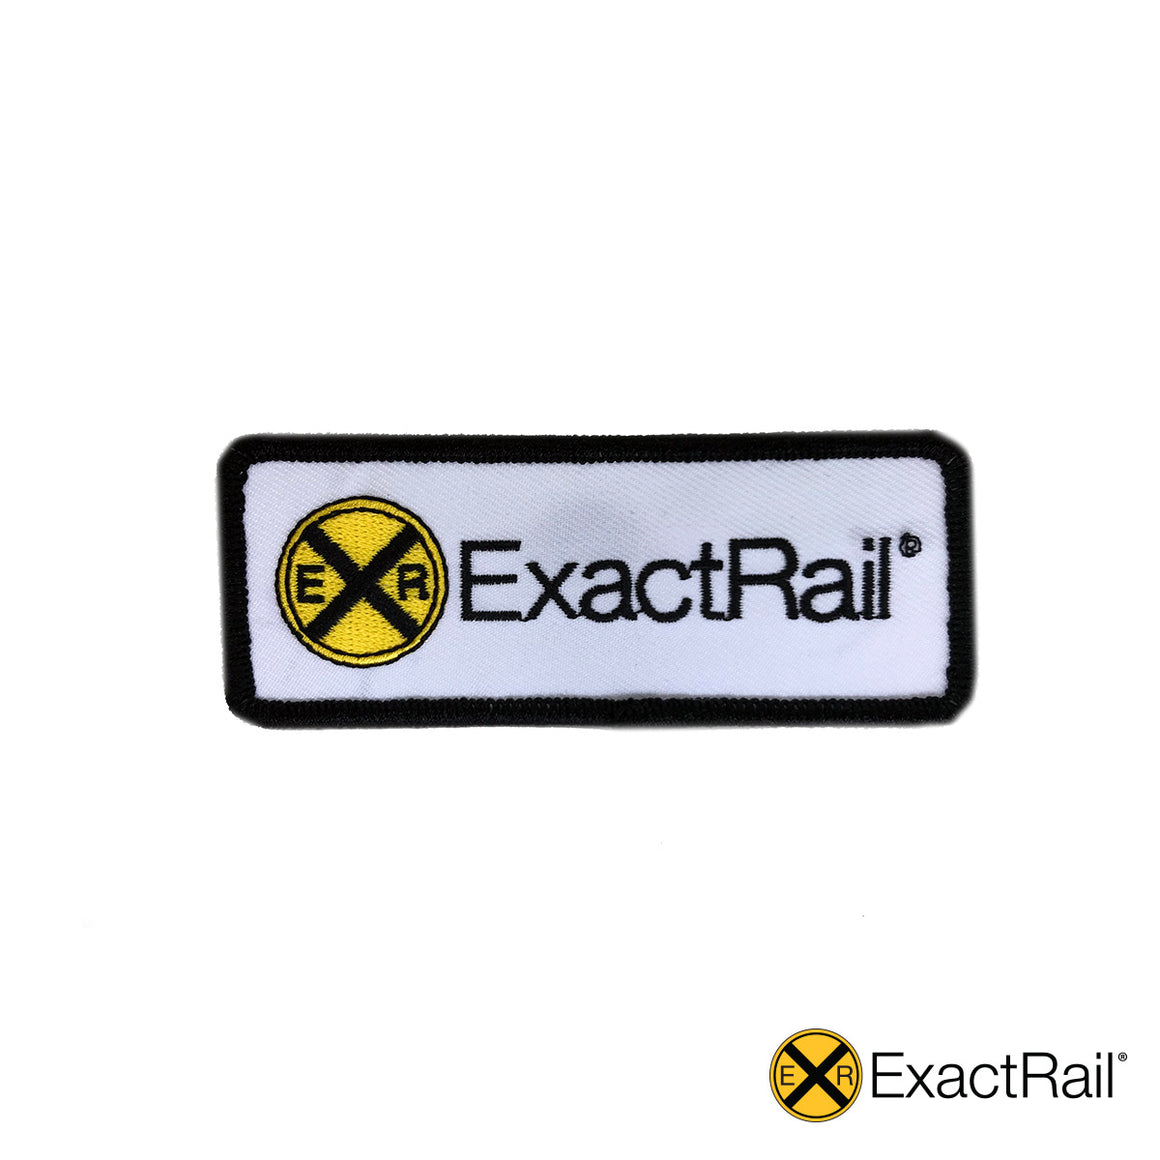 Patch: ExactRail